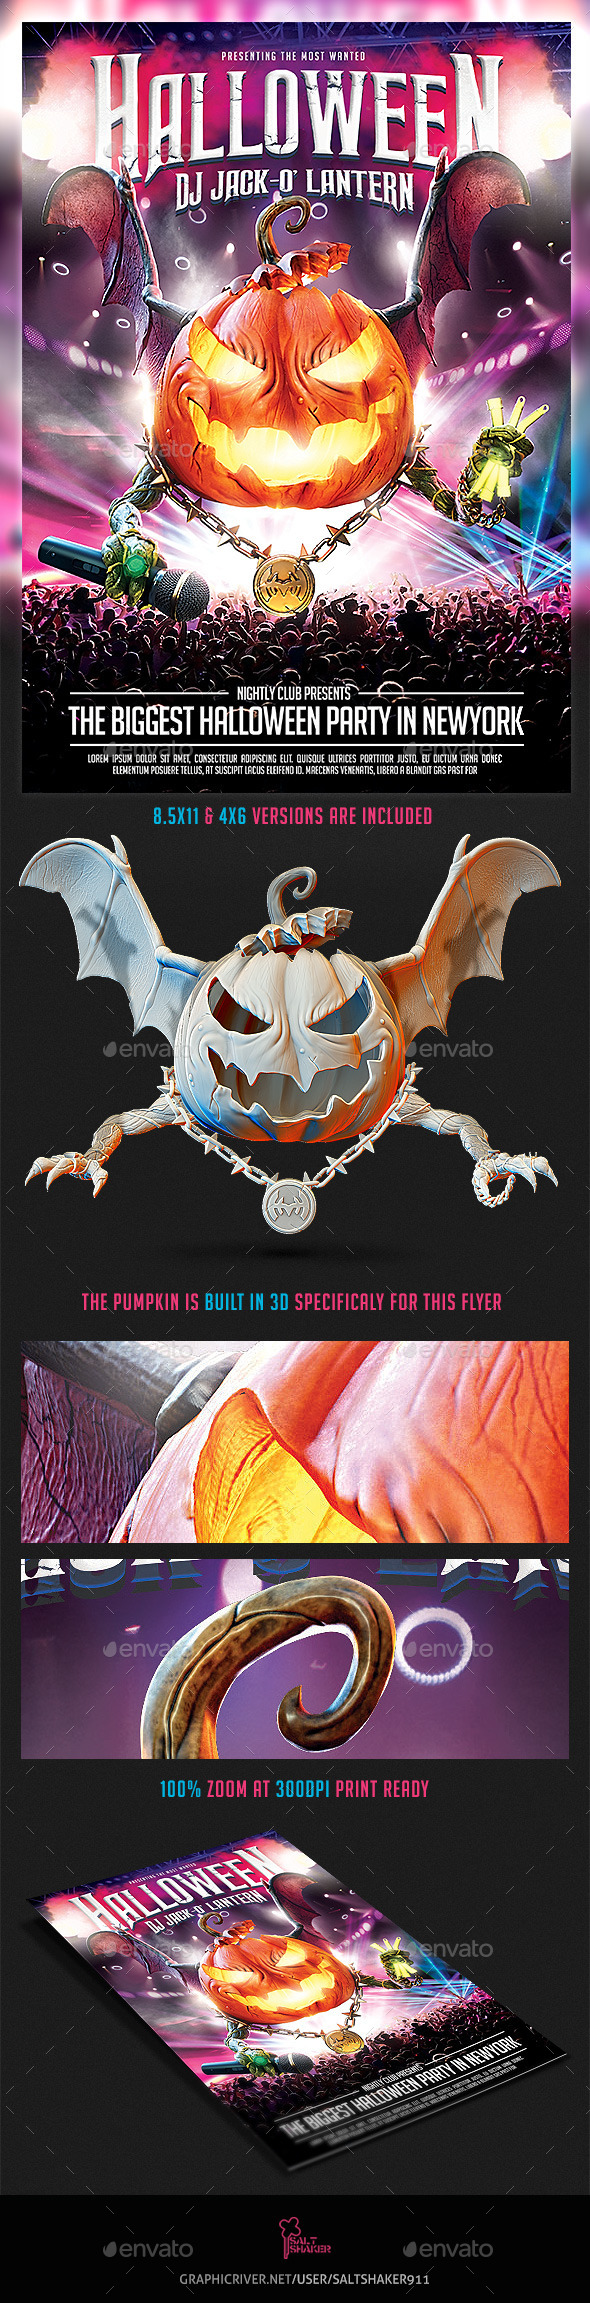 GraphicRiver Halloween Dj Party Flyer 9135407